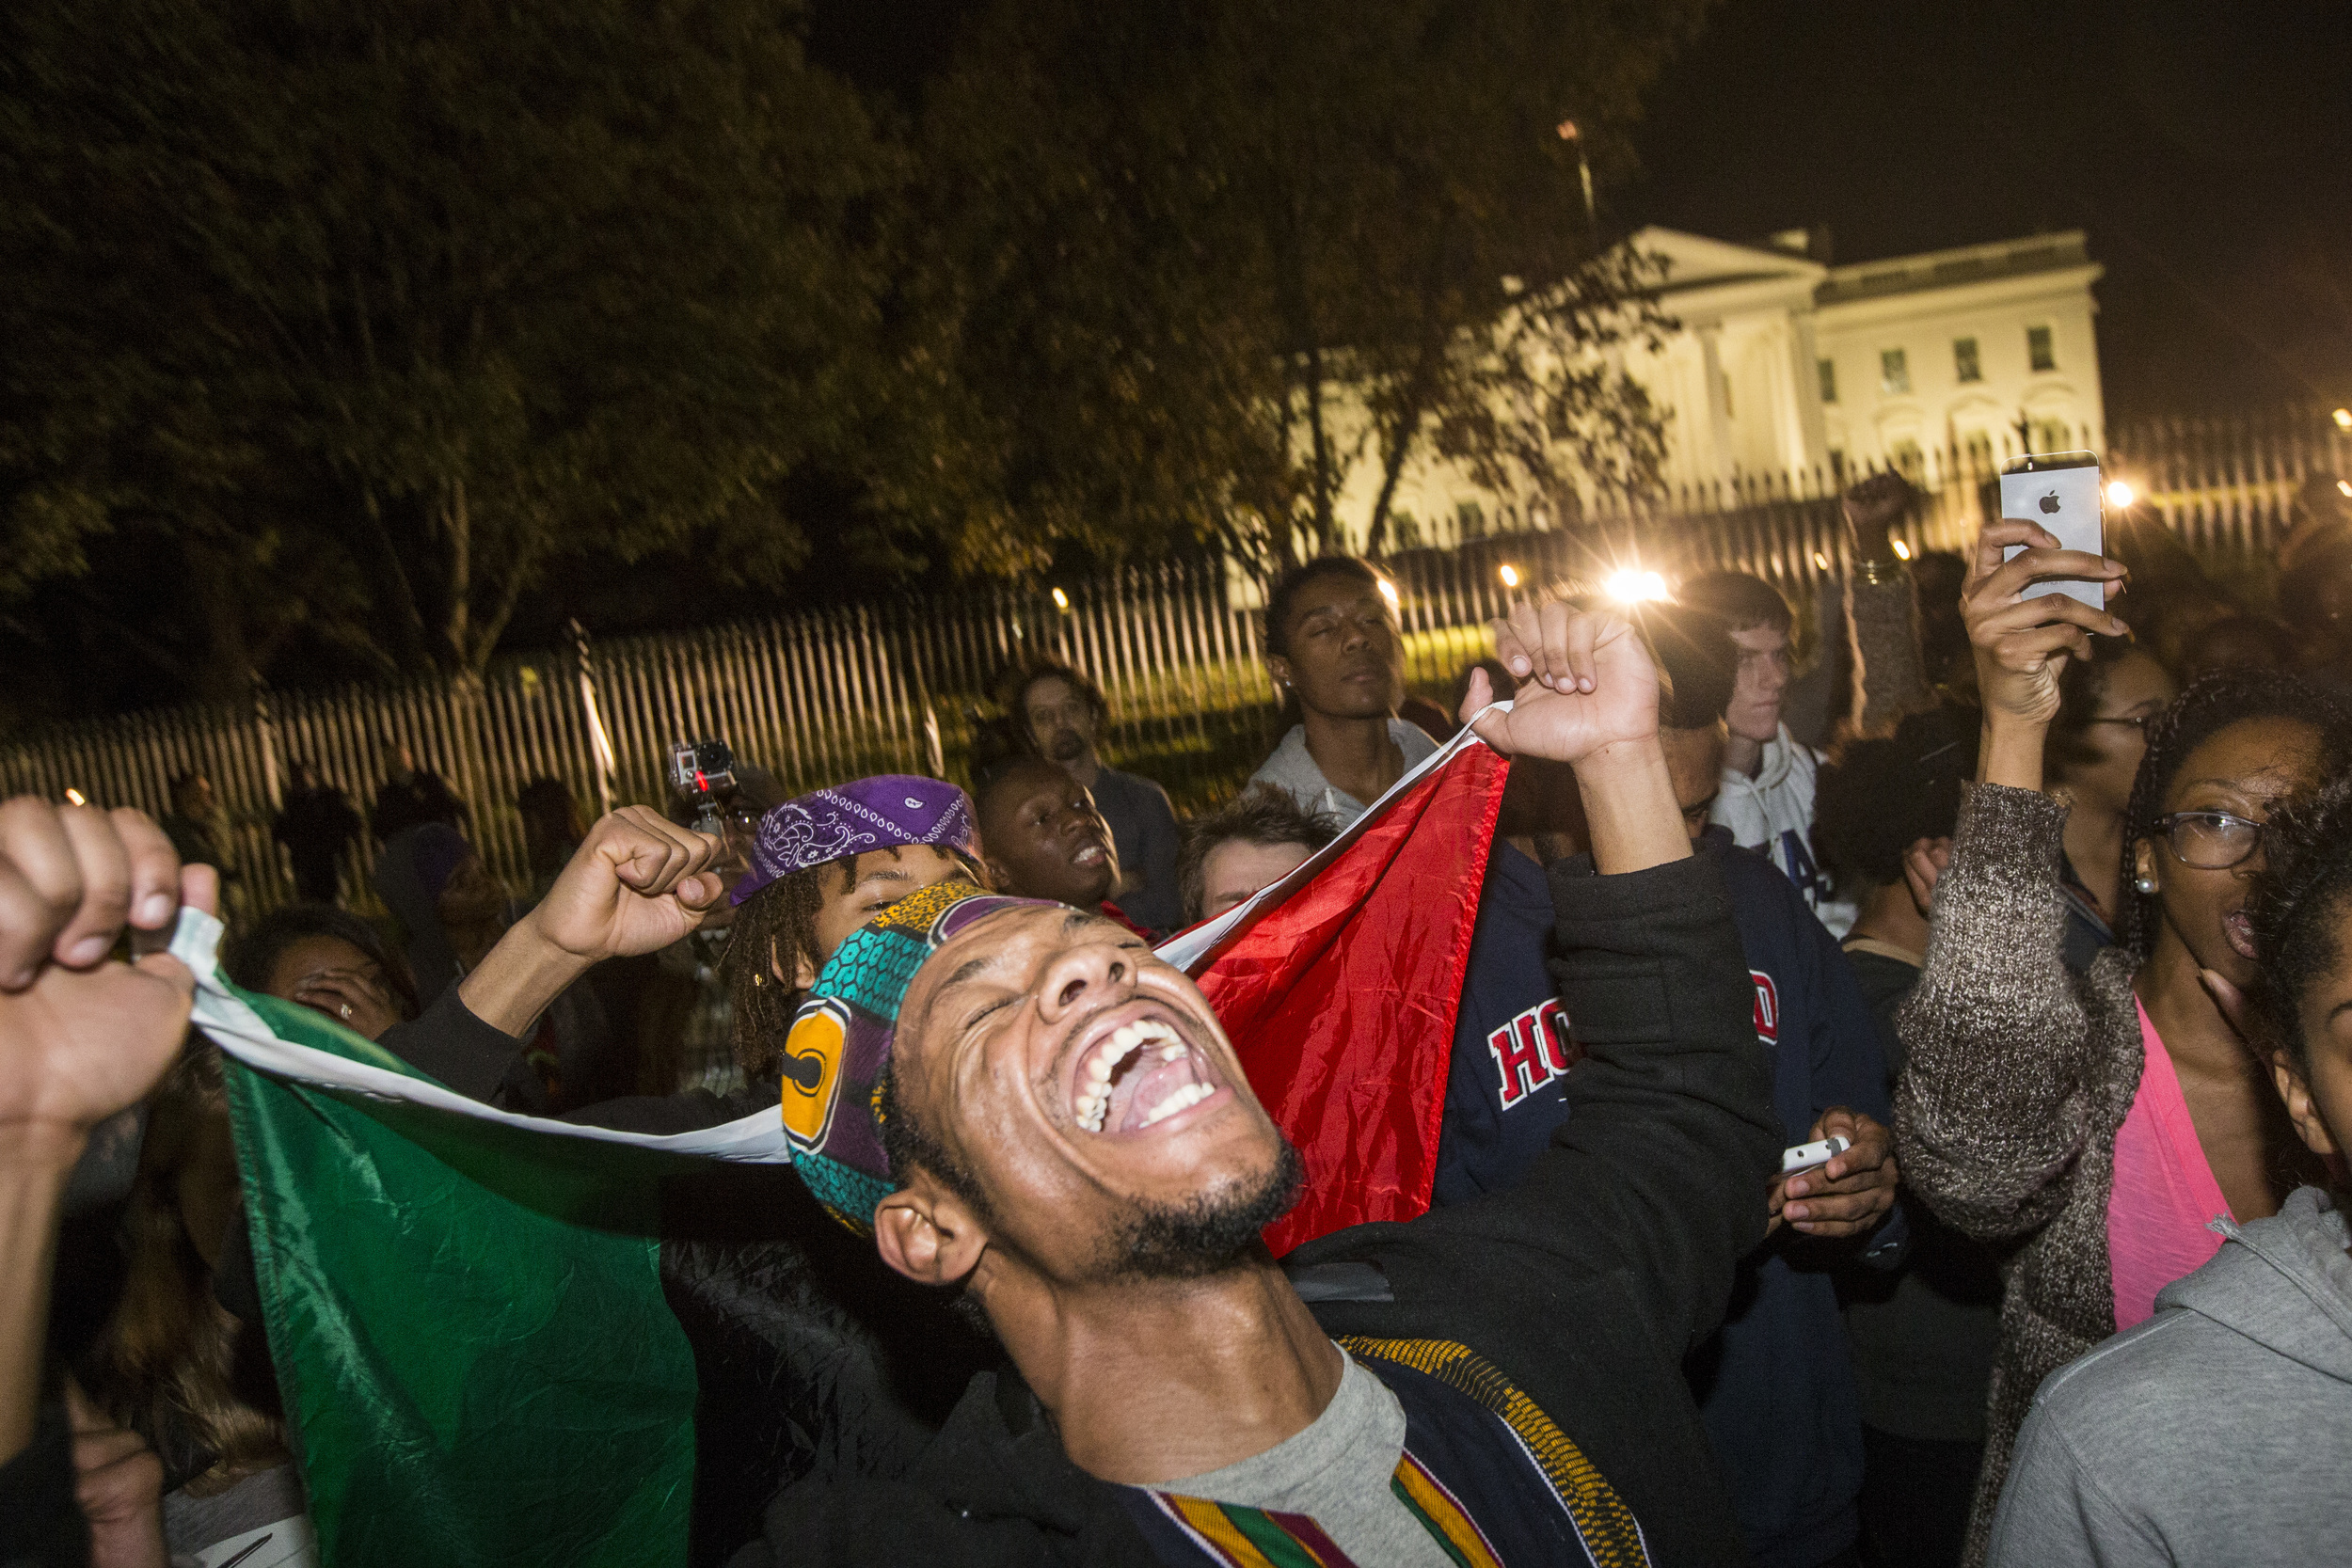 Jason Davis, 20, from Howard University shouts as protestors shout and chant in front of the White House after a grand jury in Ferguson chose not to indict Darren Wilson from Ferguson in Washington, DC on Monday November 24, 2014.